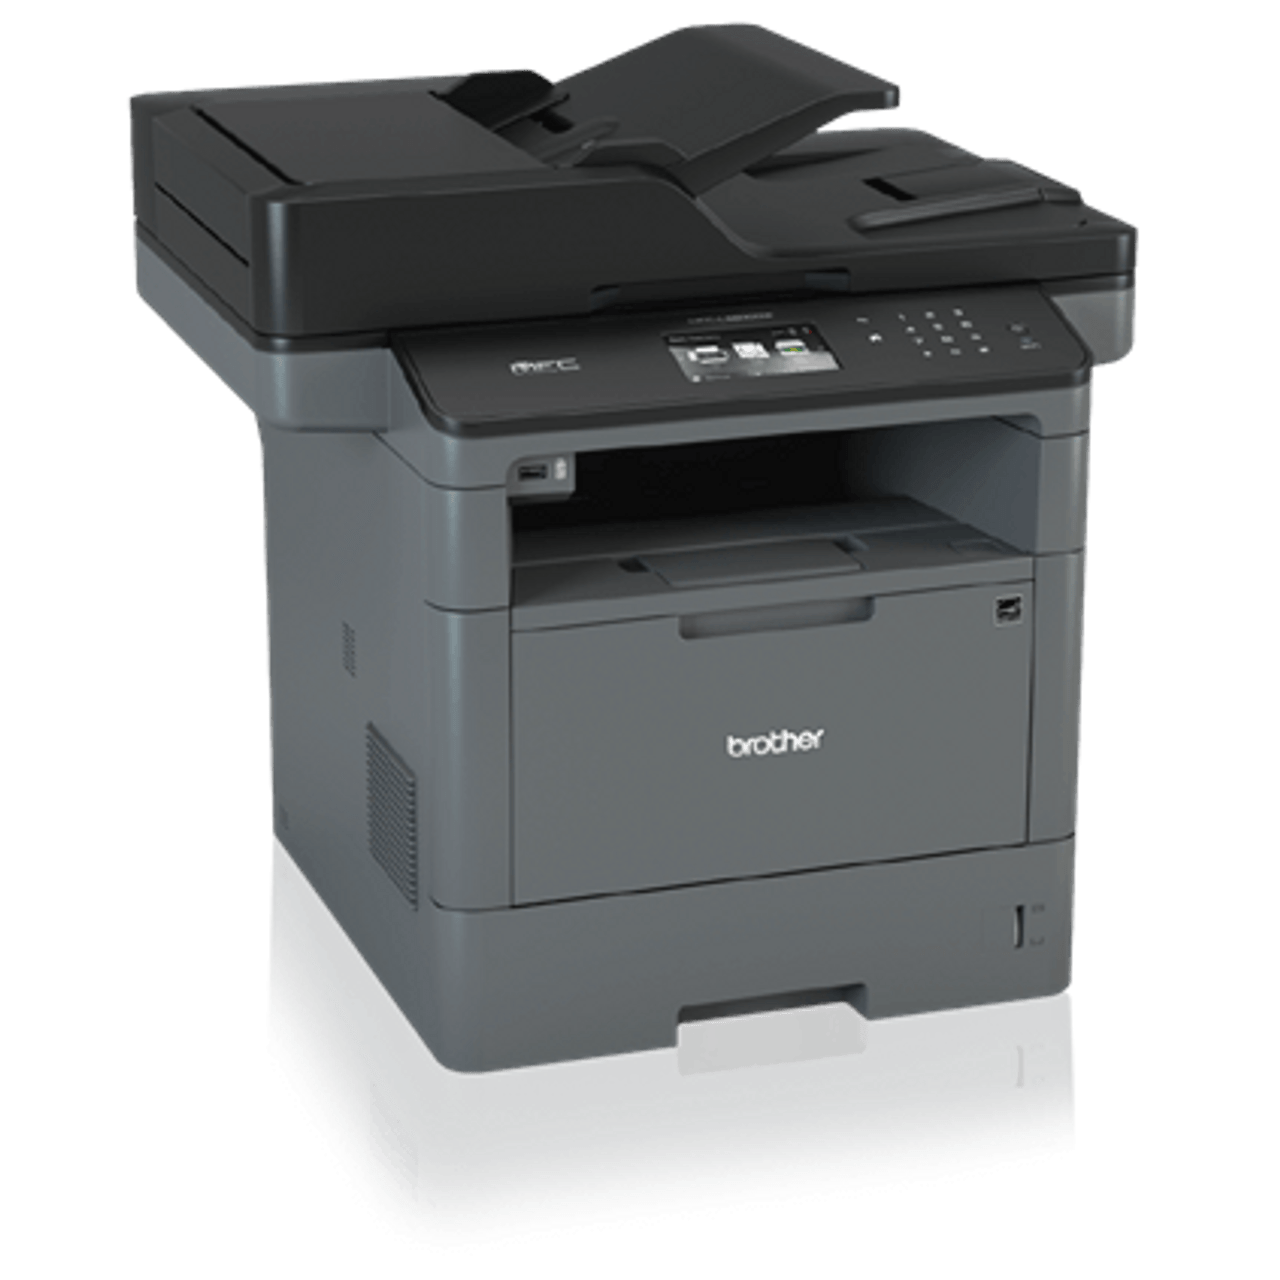 Refurbished Brother MFC-L5800DW Laser All-in-One Printer with Duplex Printing and Wireless Networking